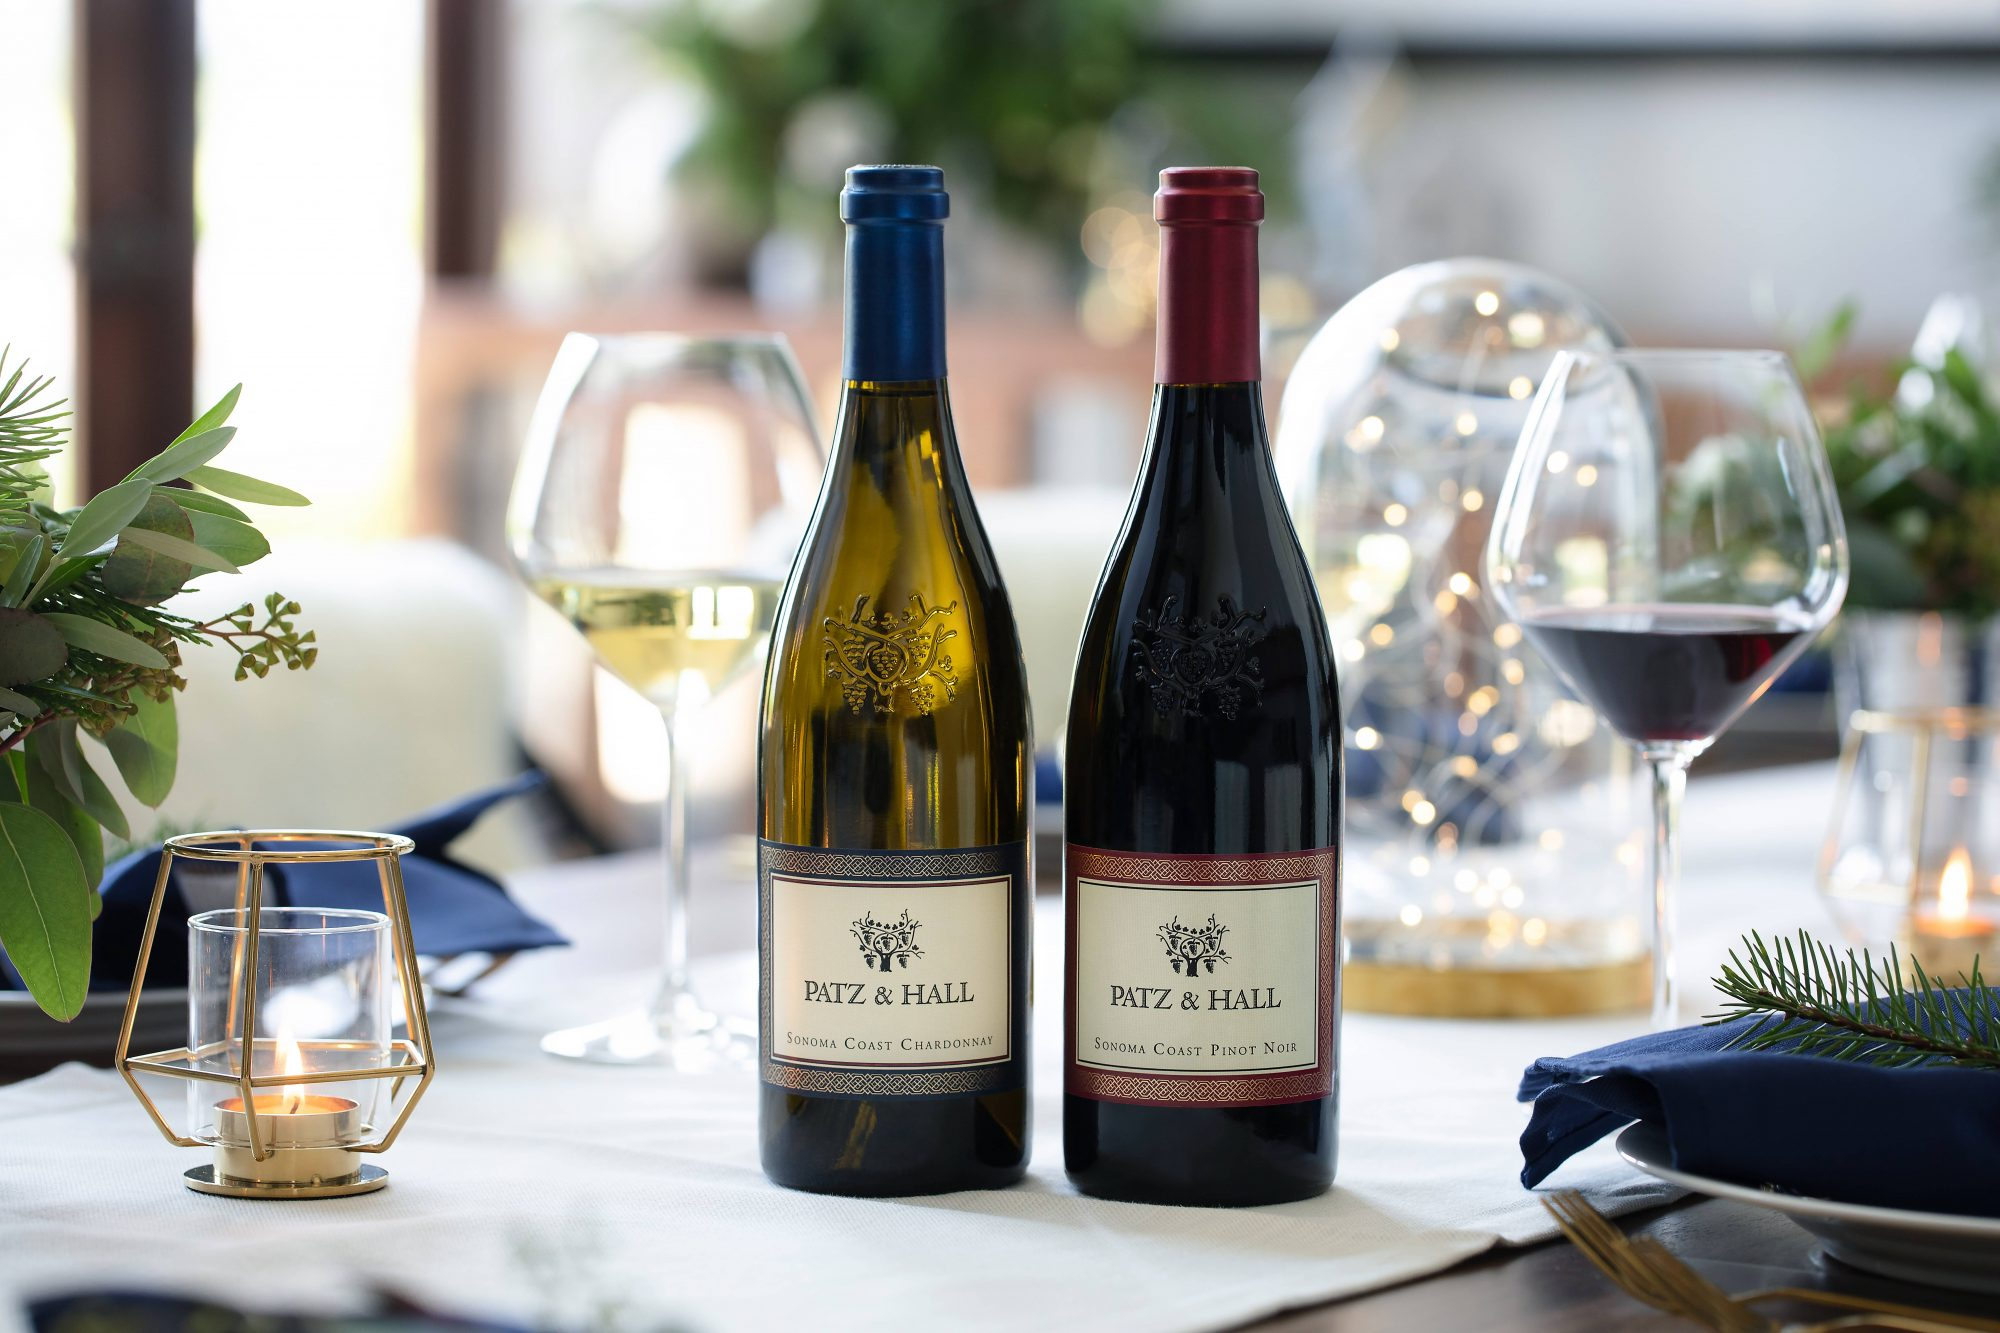 This aptly-named set is the greatest gift you can give any Sonoma wine fan. It includes a bottle of Patz & Hall's 2017 Sonoma Coast Chardonnay—with vibrant, aromatic notes of apricot, green apple, and roasted hazelnuts—plus its popular 2017 Sonoma Coast Pinot Noir, bursting with bright, smooth red fruit flavors. The pair comes packaged in a beautiful blue gift box.